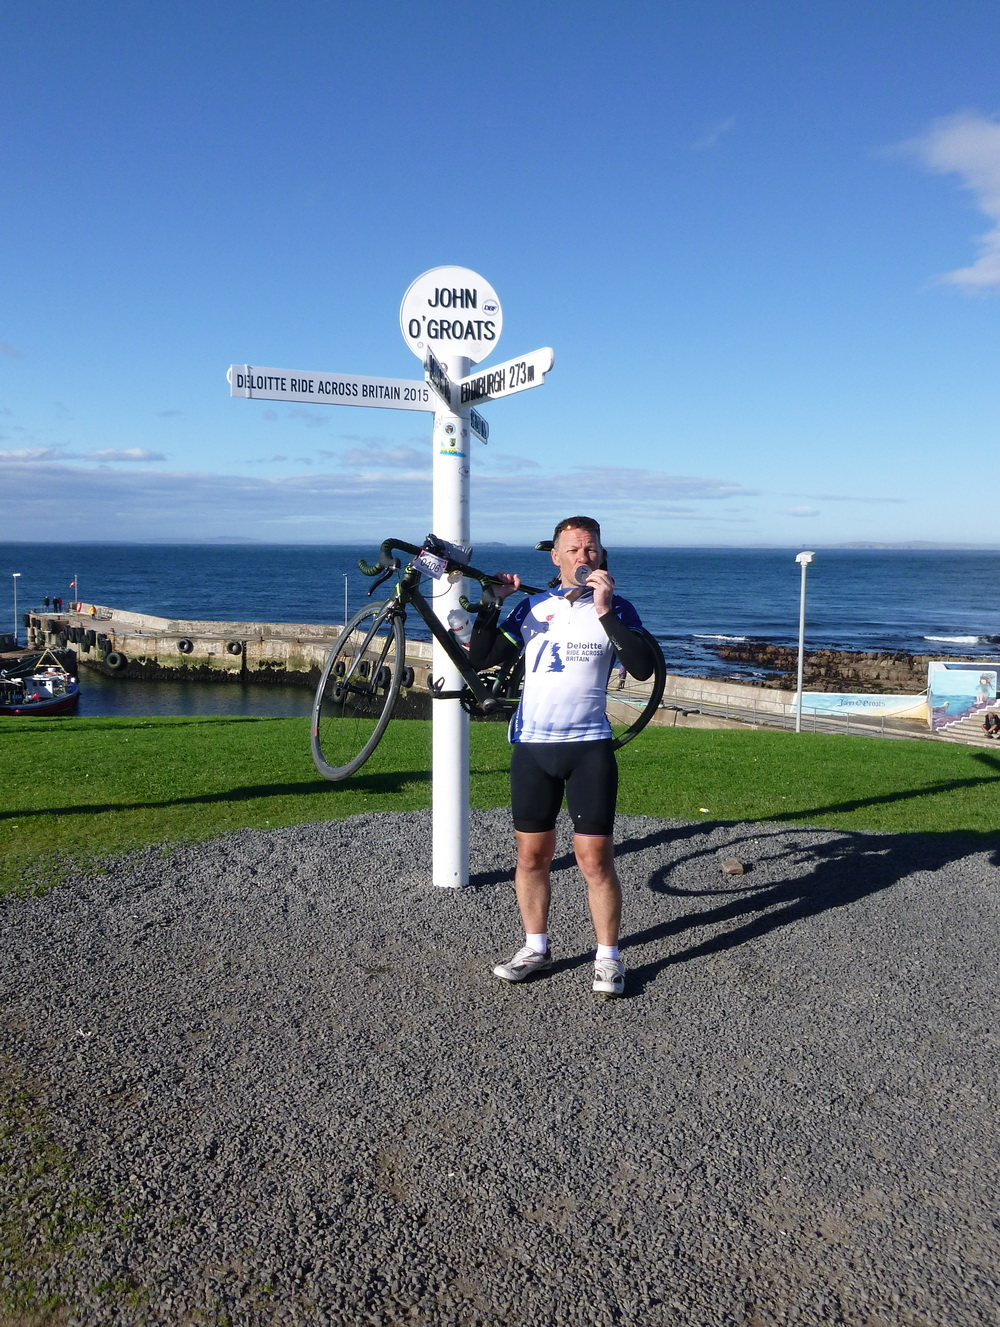 At John O'Groats; the finish line